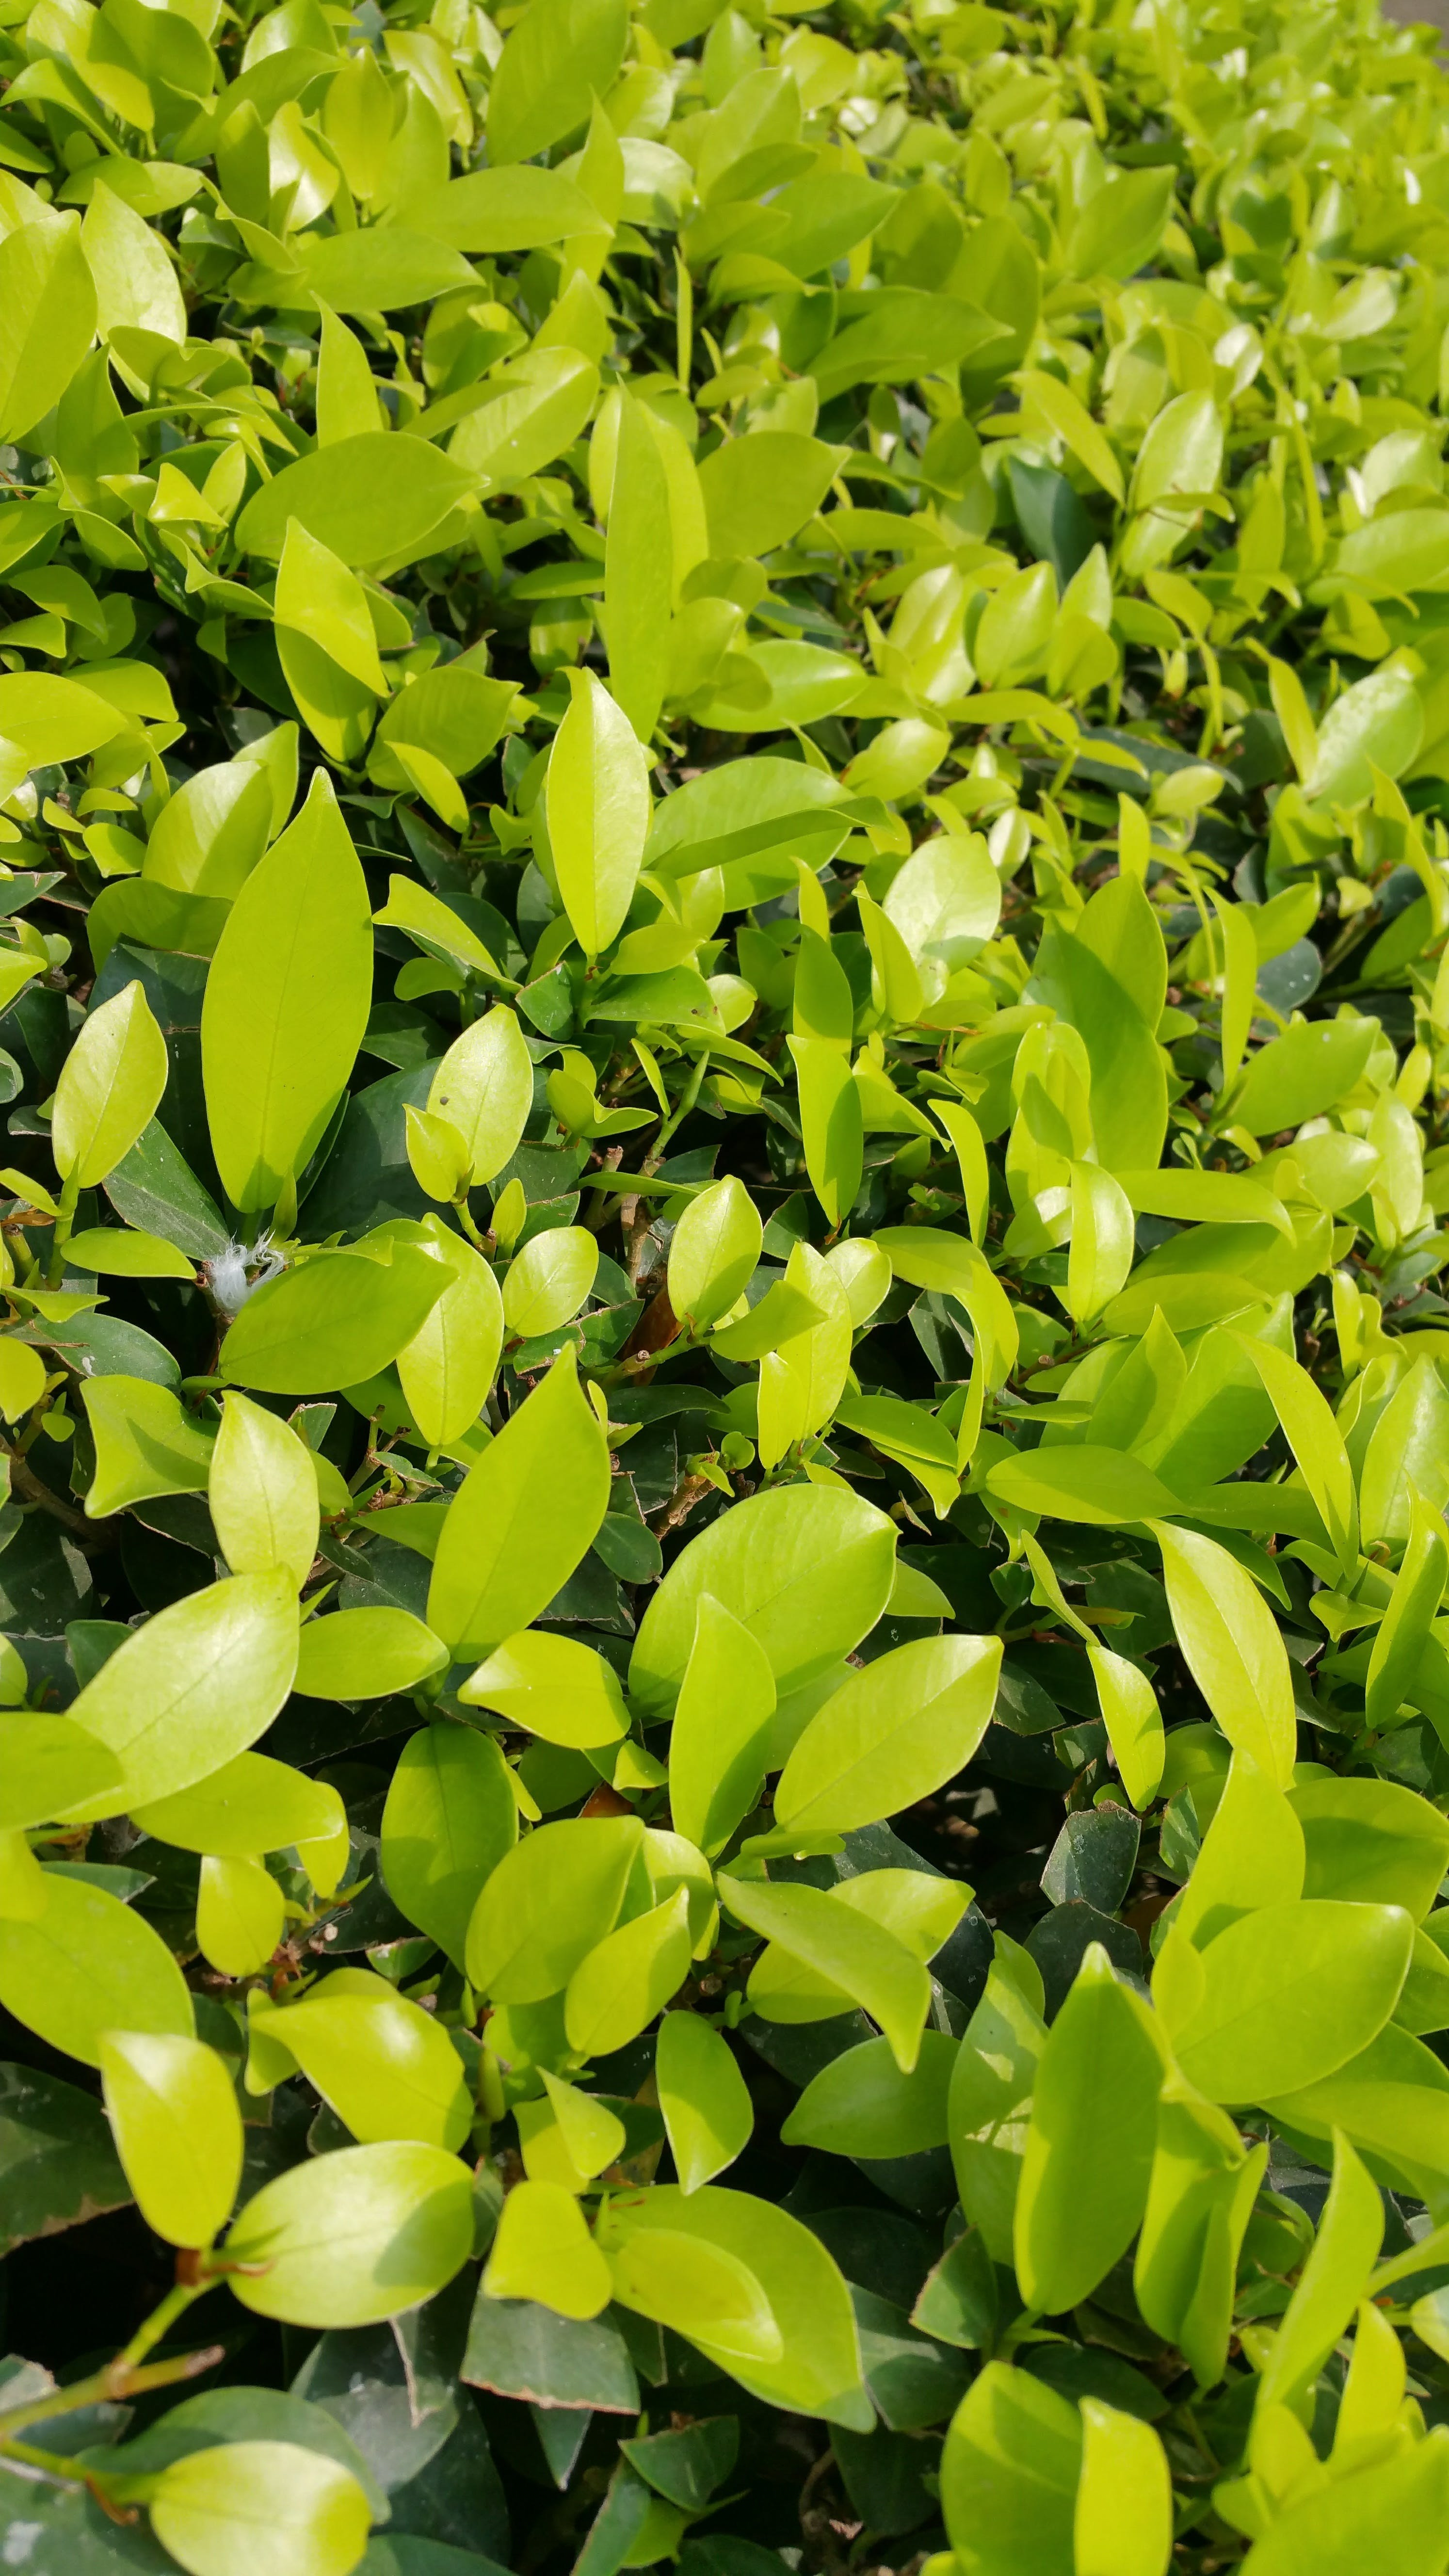 Free stock photo of garden, leaves, plants, green